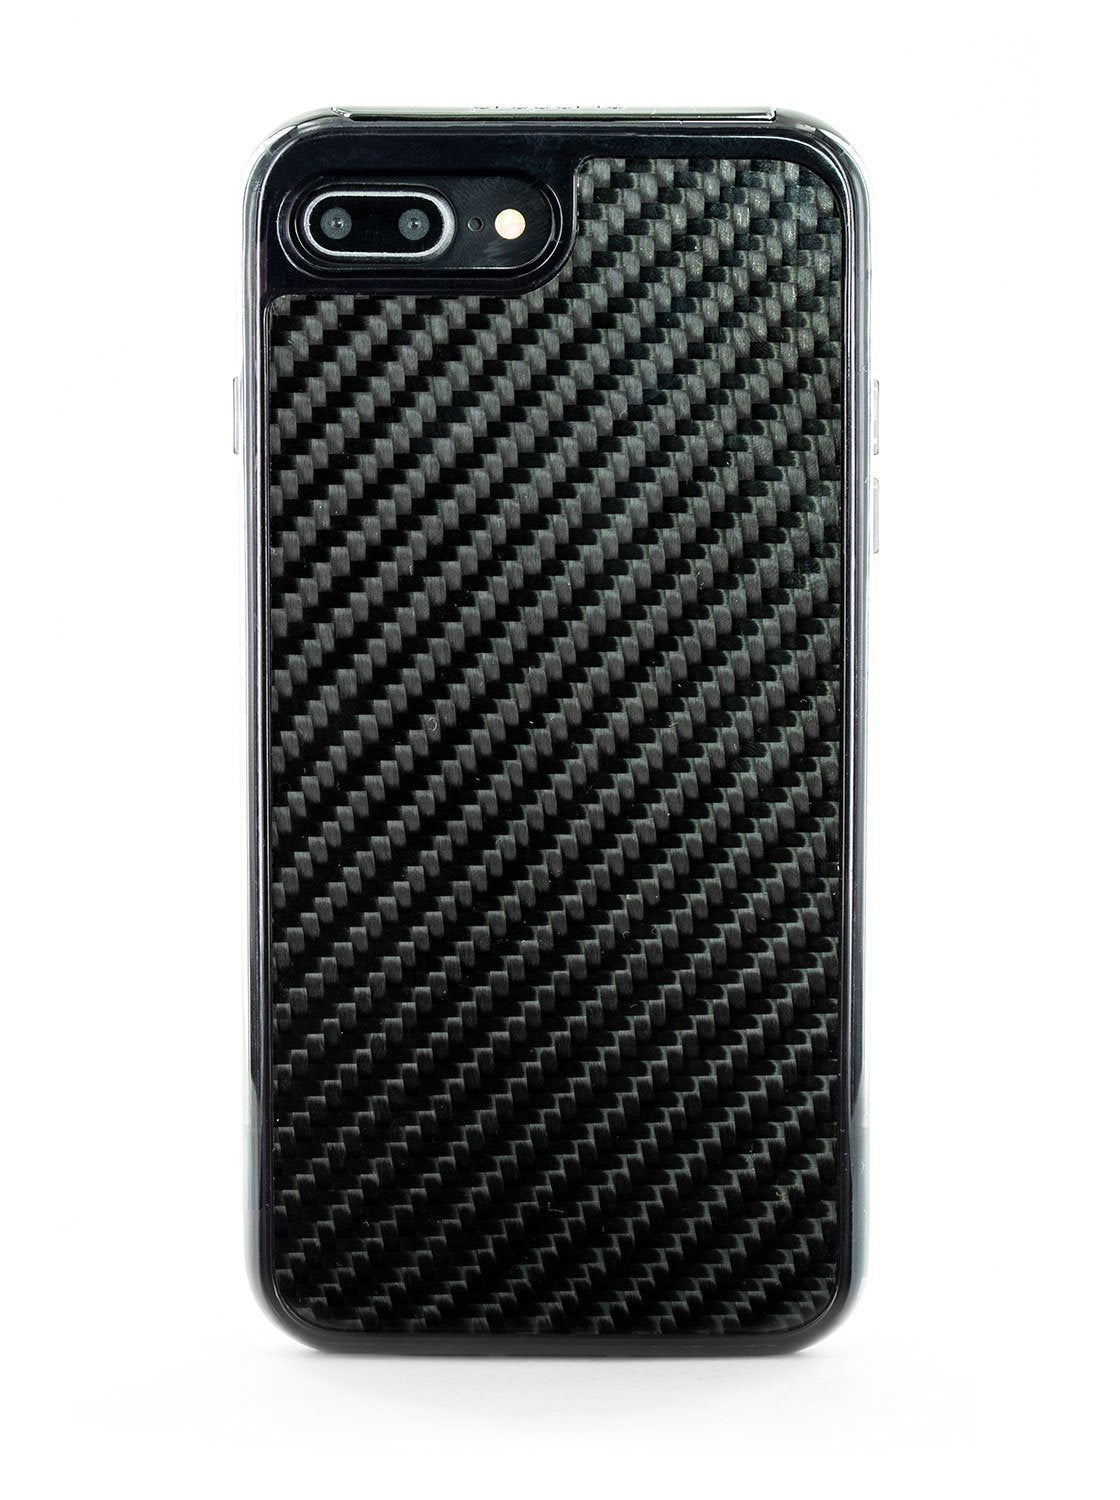 FLEX Anti Shock Kickstand Case for iPhone 8 Plus / 7 Plus - Carbon Fibre